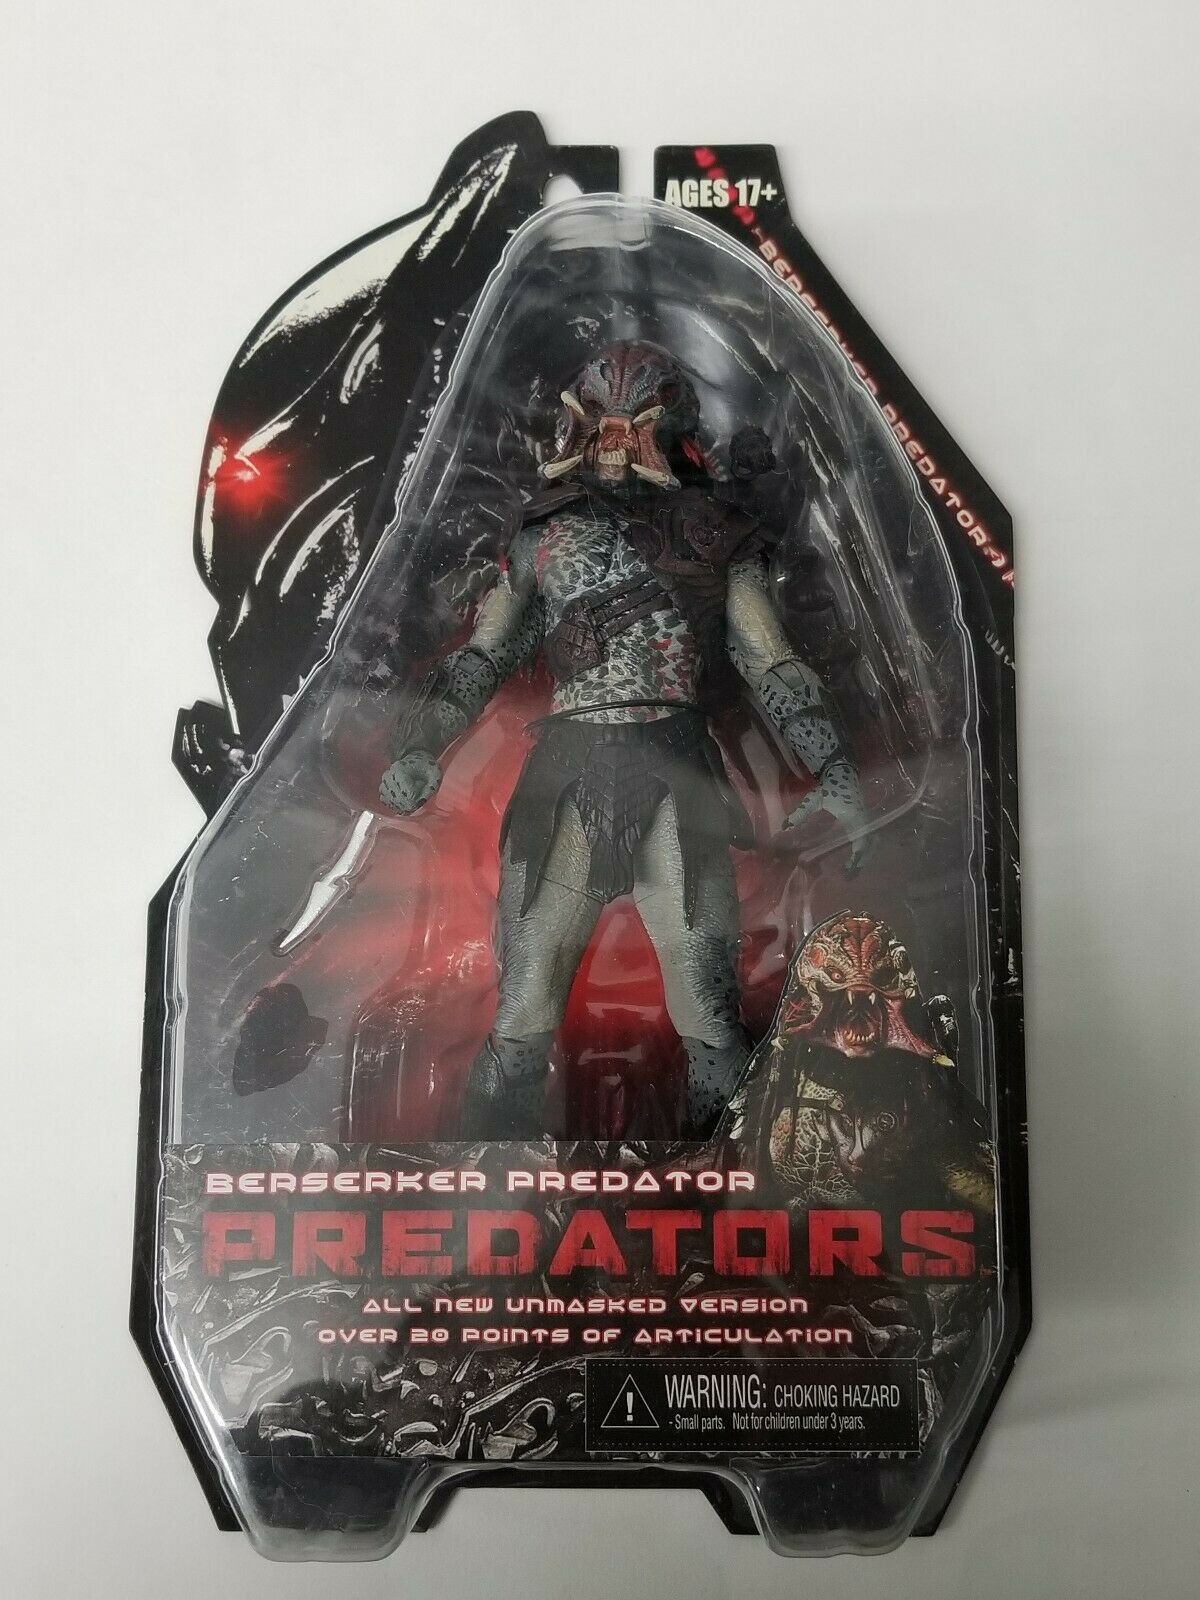 NECA Protators 2010 Movie Series 2 Action Figure Berserker Protator Unmasked 7